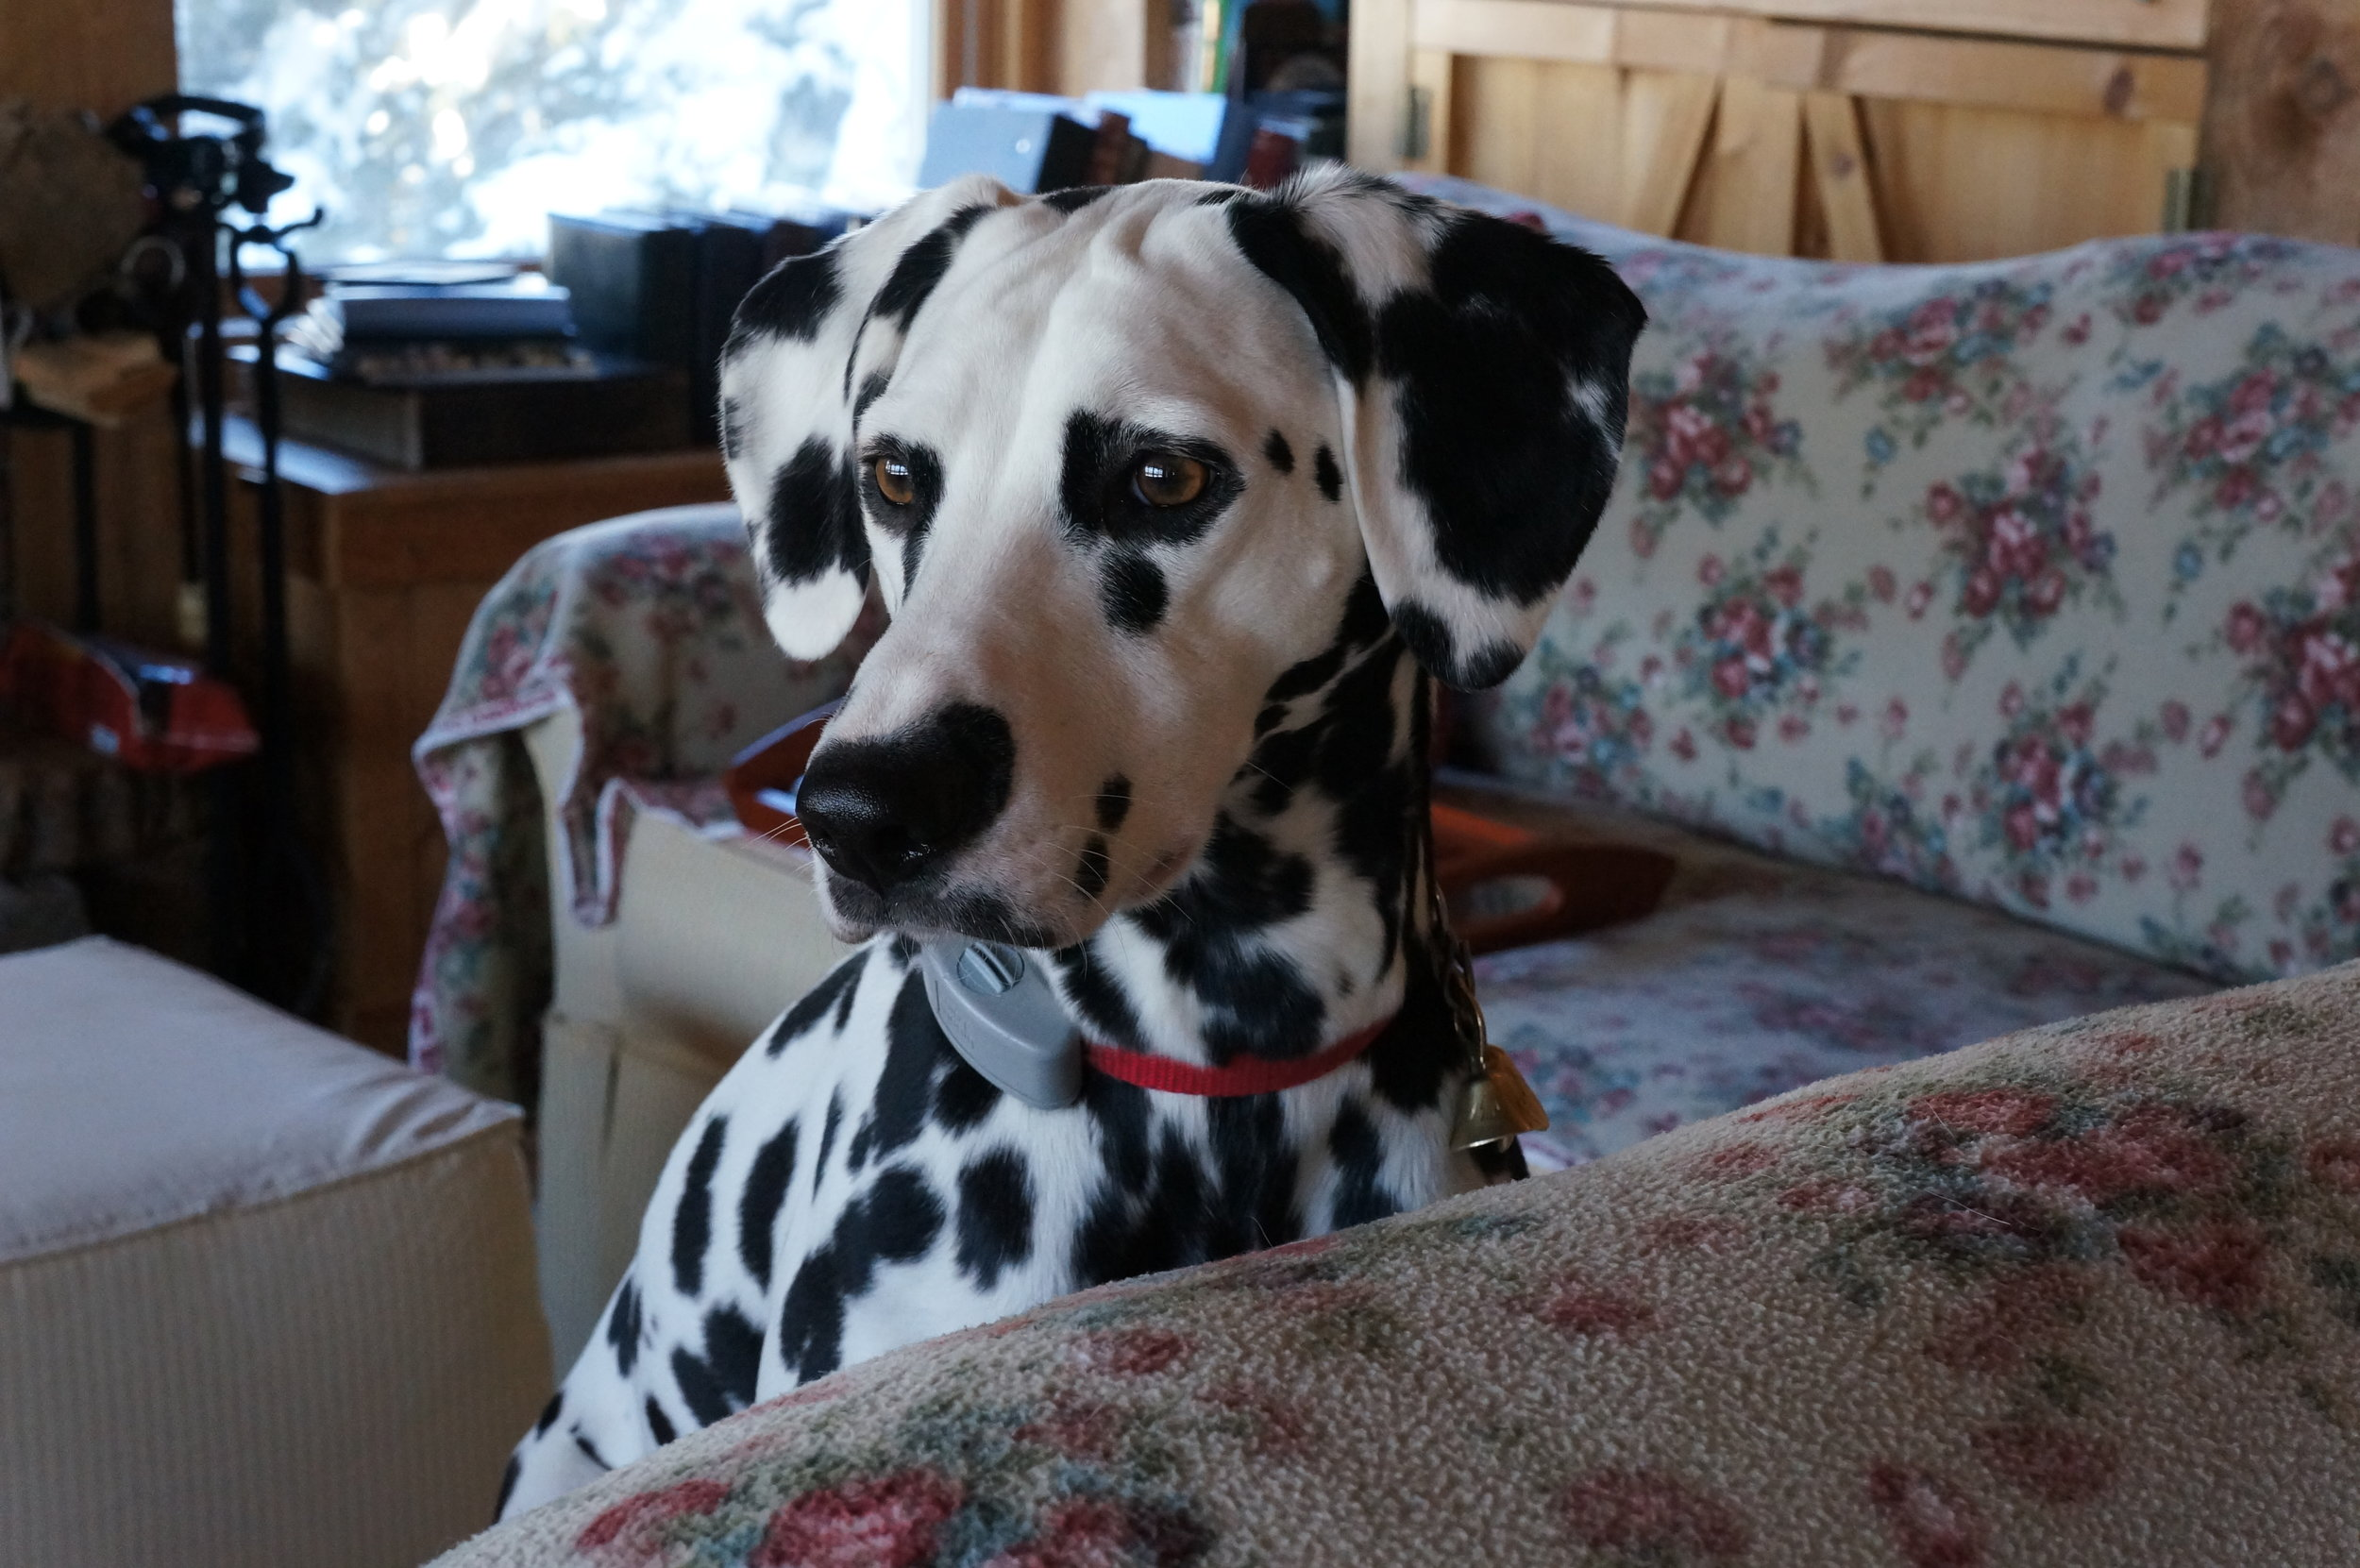 Our deaf dog, Judea, is a candidate for CBD as she ages and her joints begin to ache.